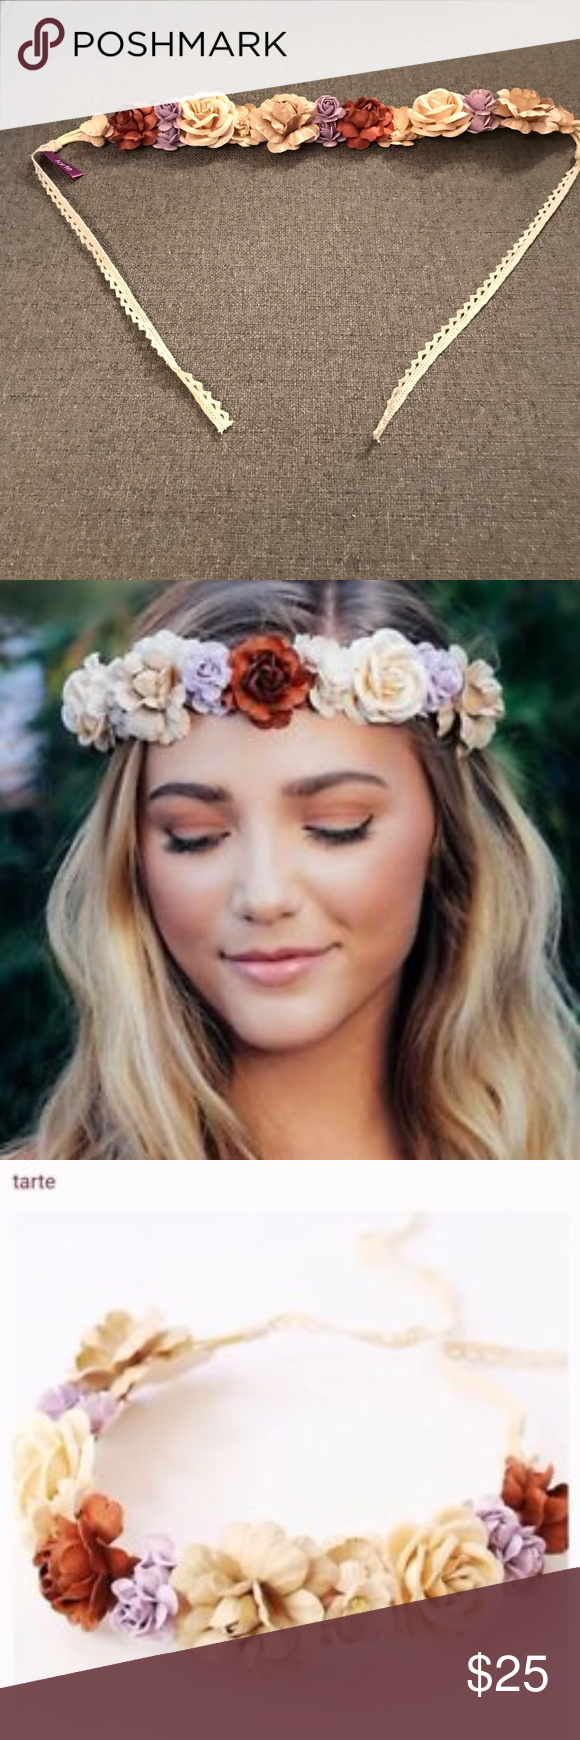 New tarte floral headband crown with flowers flower crown headband new tarte floral headband crown with flowers izmirmasajfo